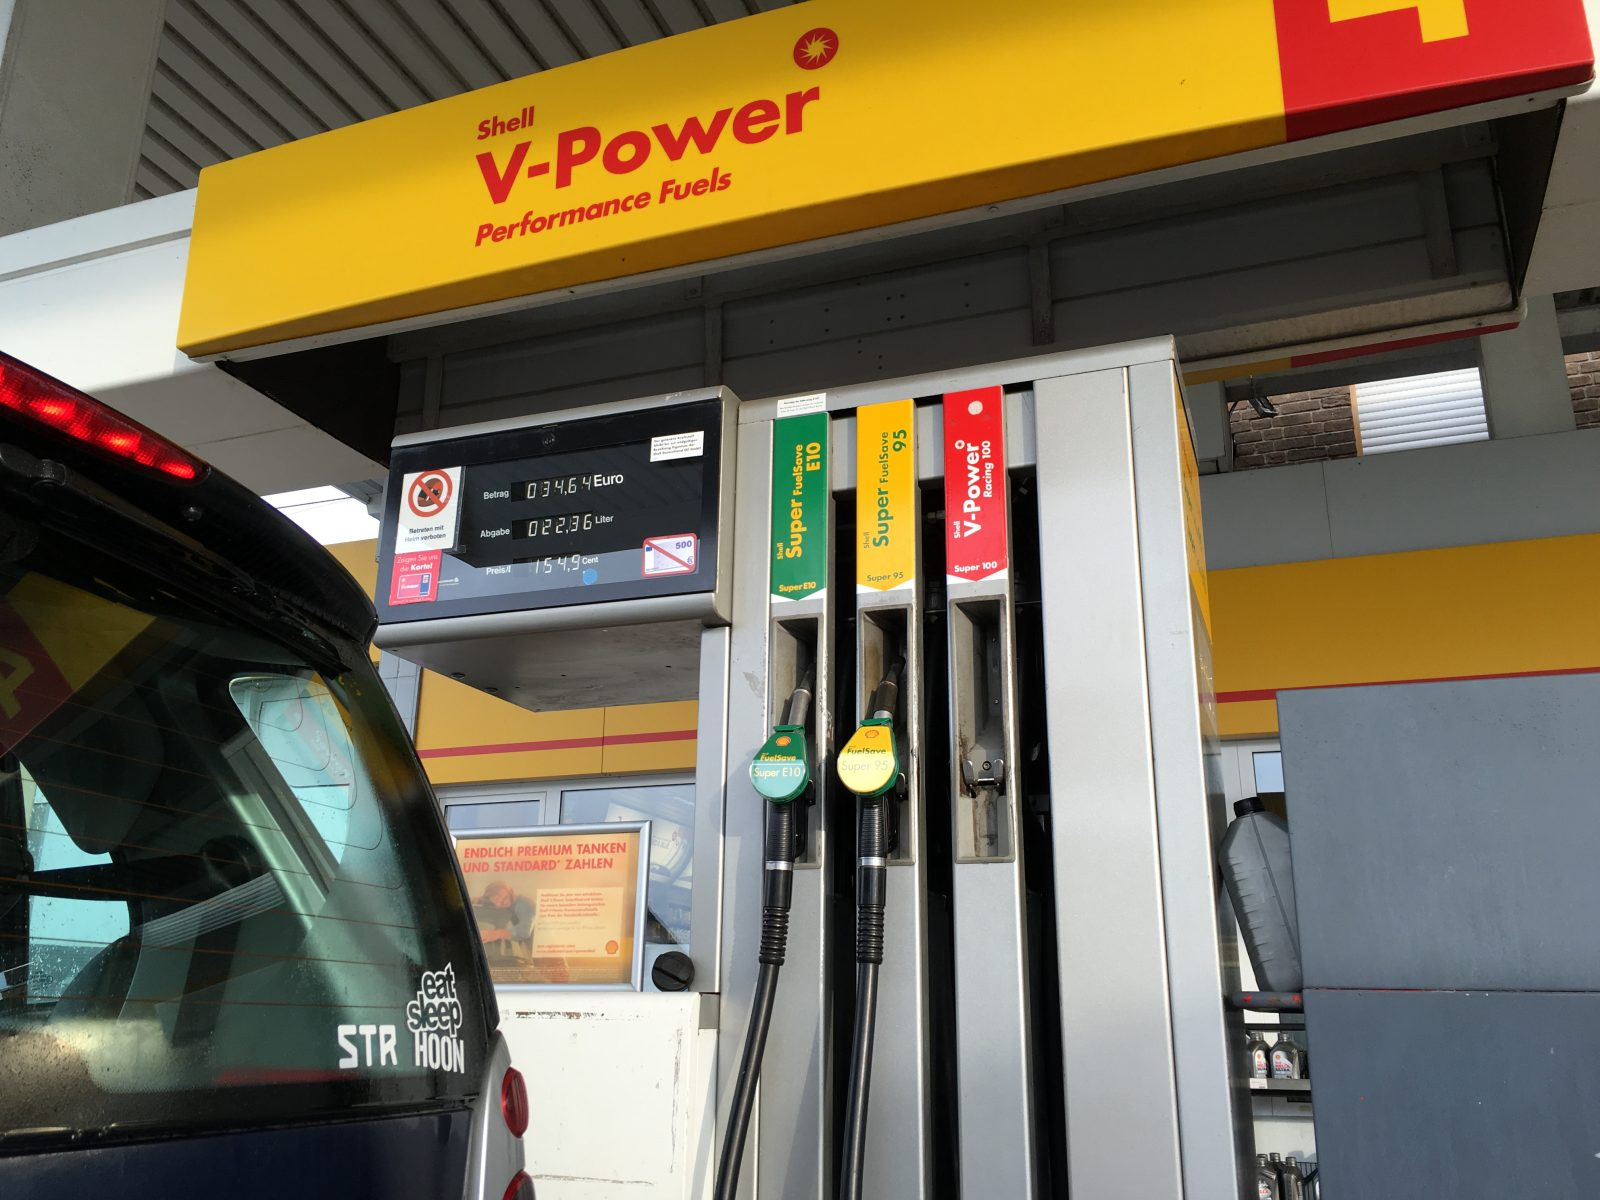 Shell V-Power SmartDeal